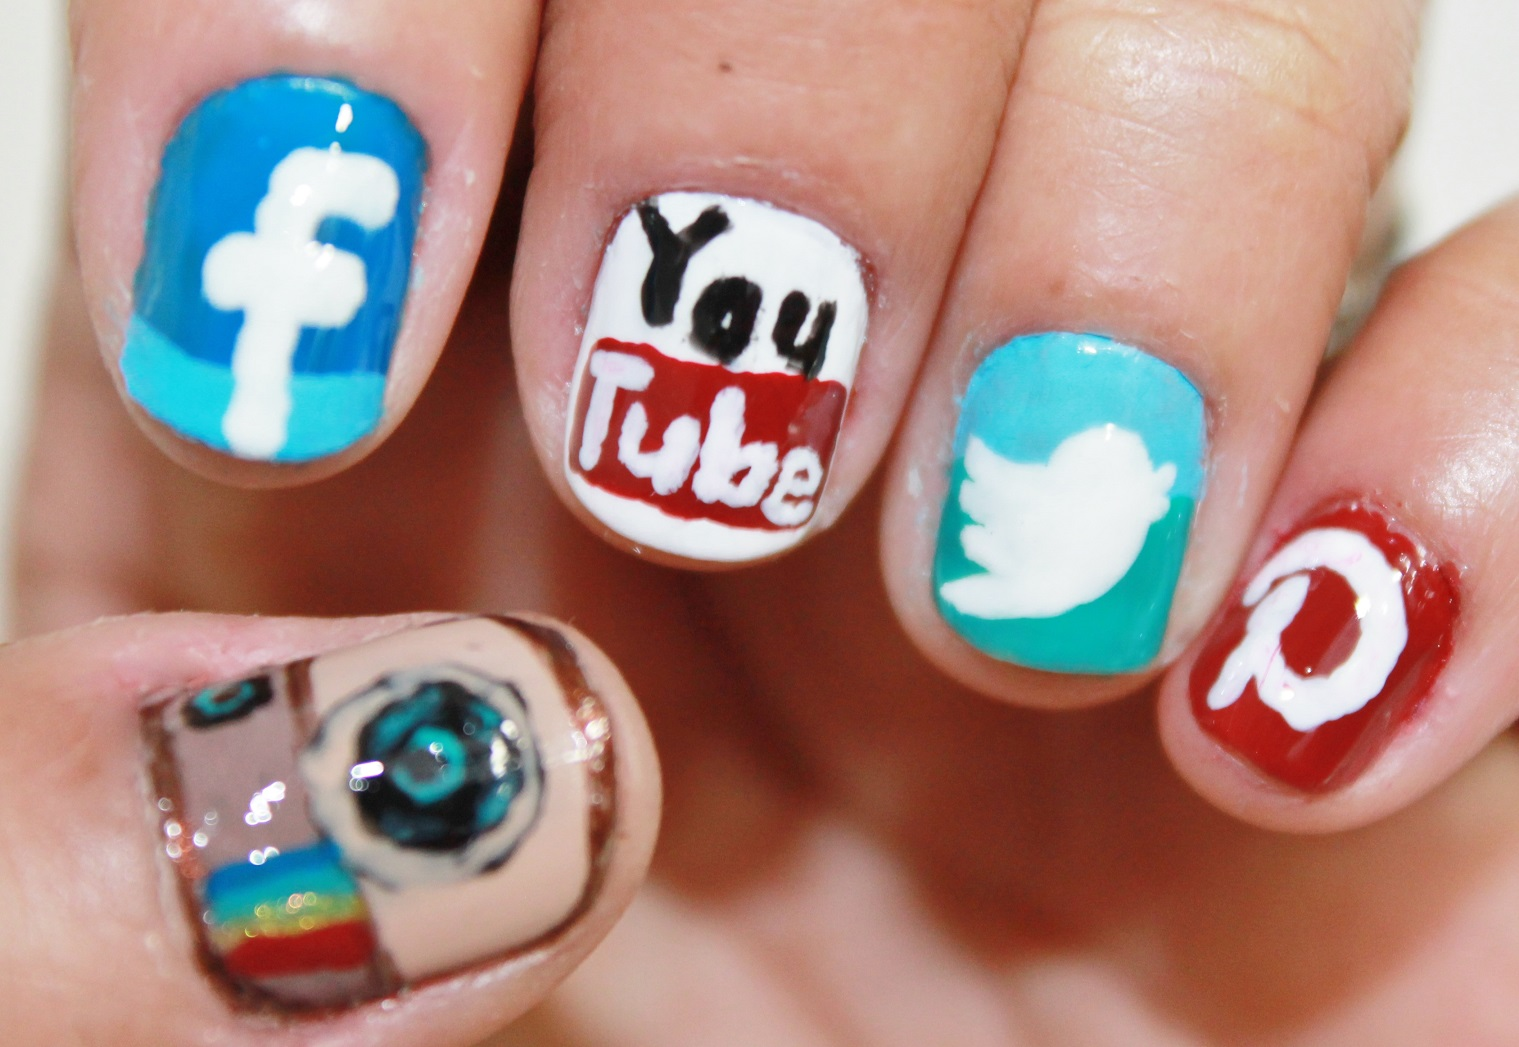 : Phone Apps Nail Art ( Instagram,Facebook,Twitter,Pinterest